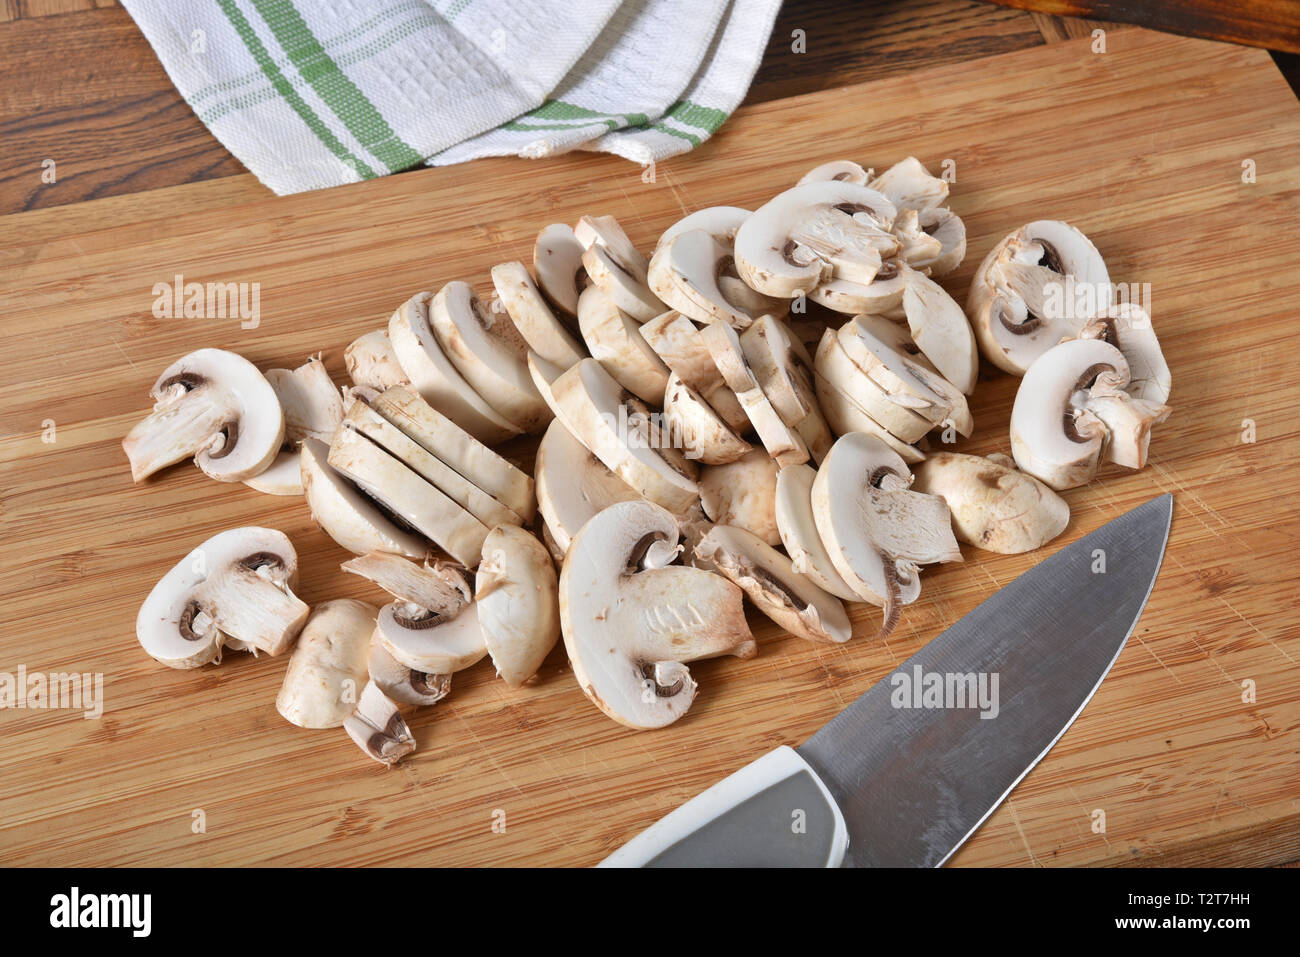 A mound of sliced button mushrooms on a chtting board - Stock Image